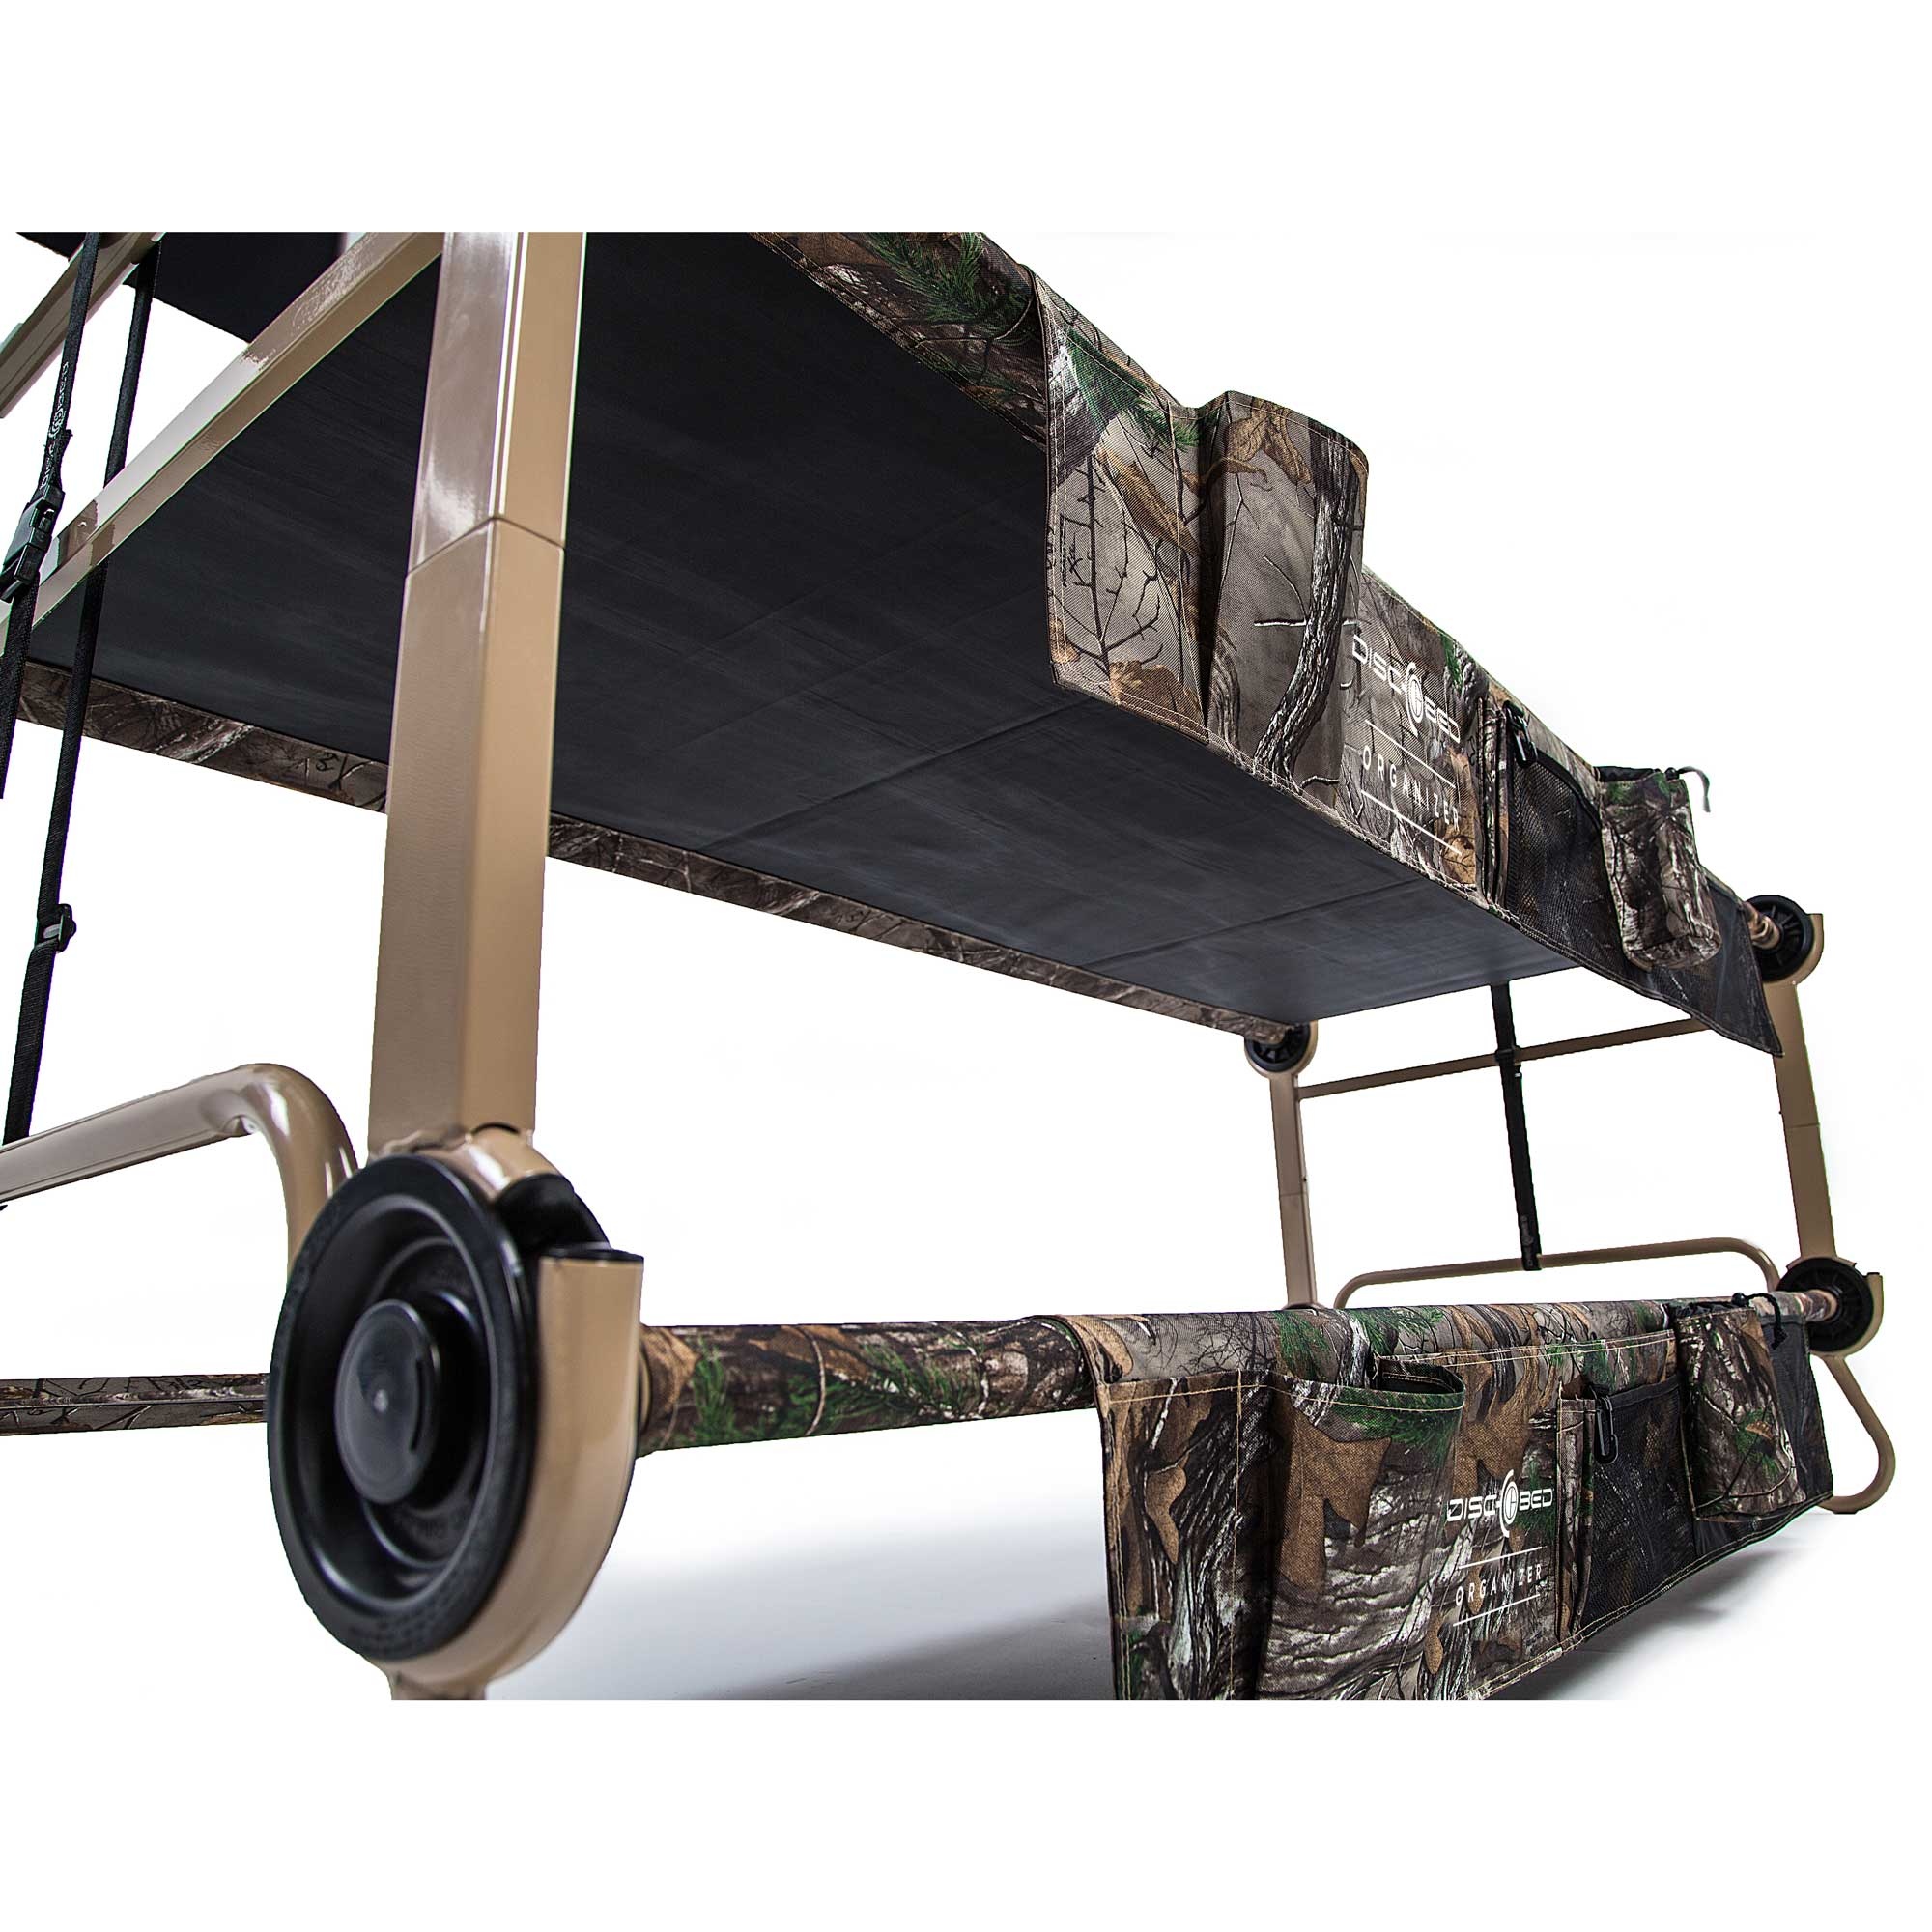 Disc O Bed XLarge Cam Bunk Bunked Realtree Double Cot Mosquito Net And Frame